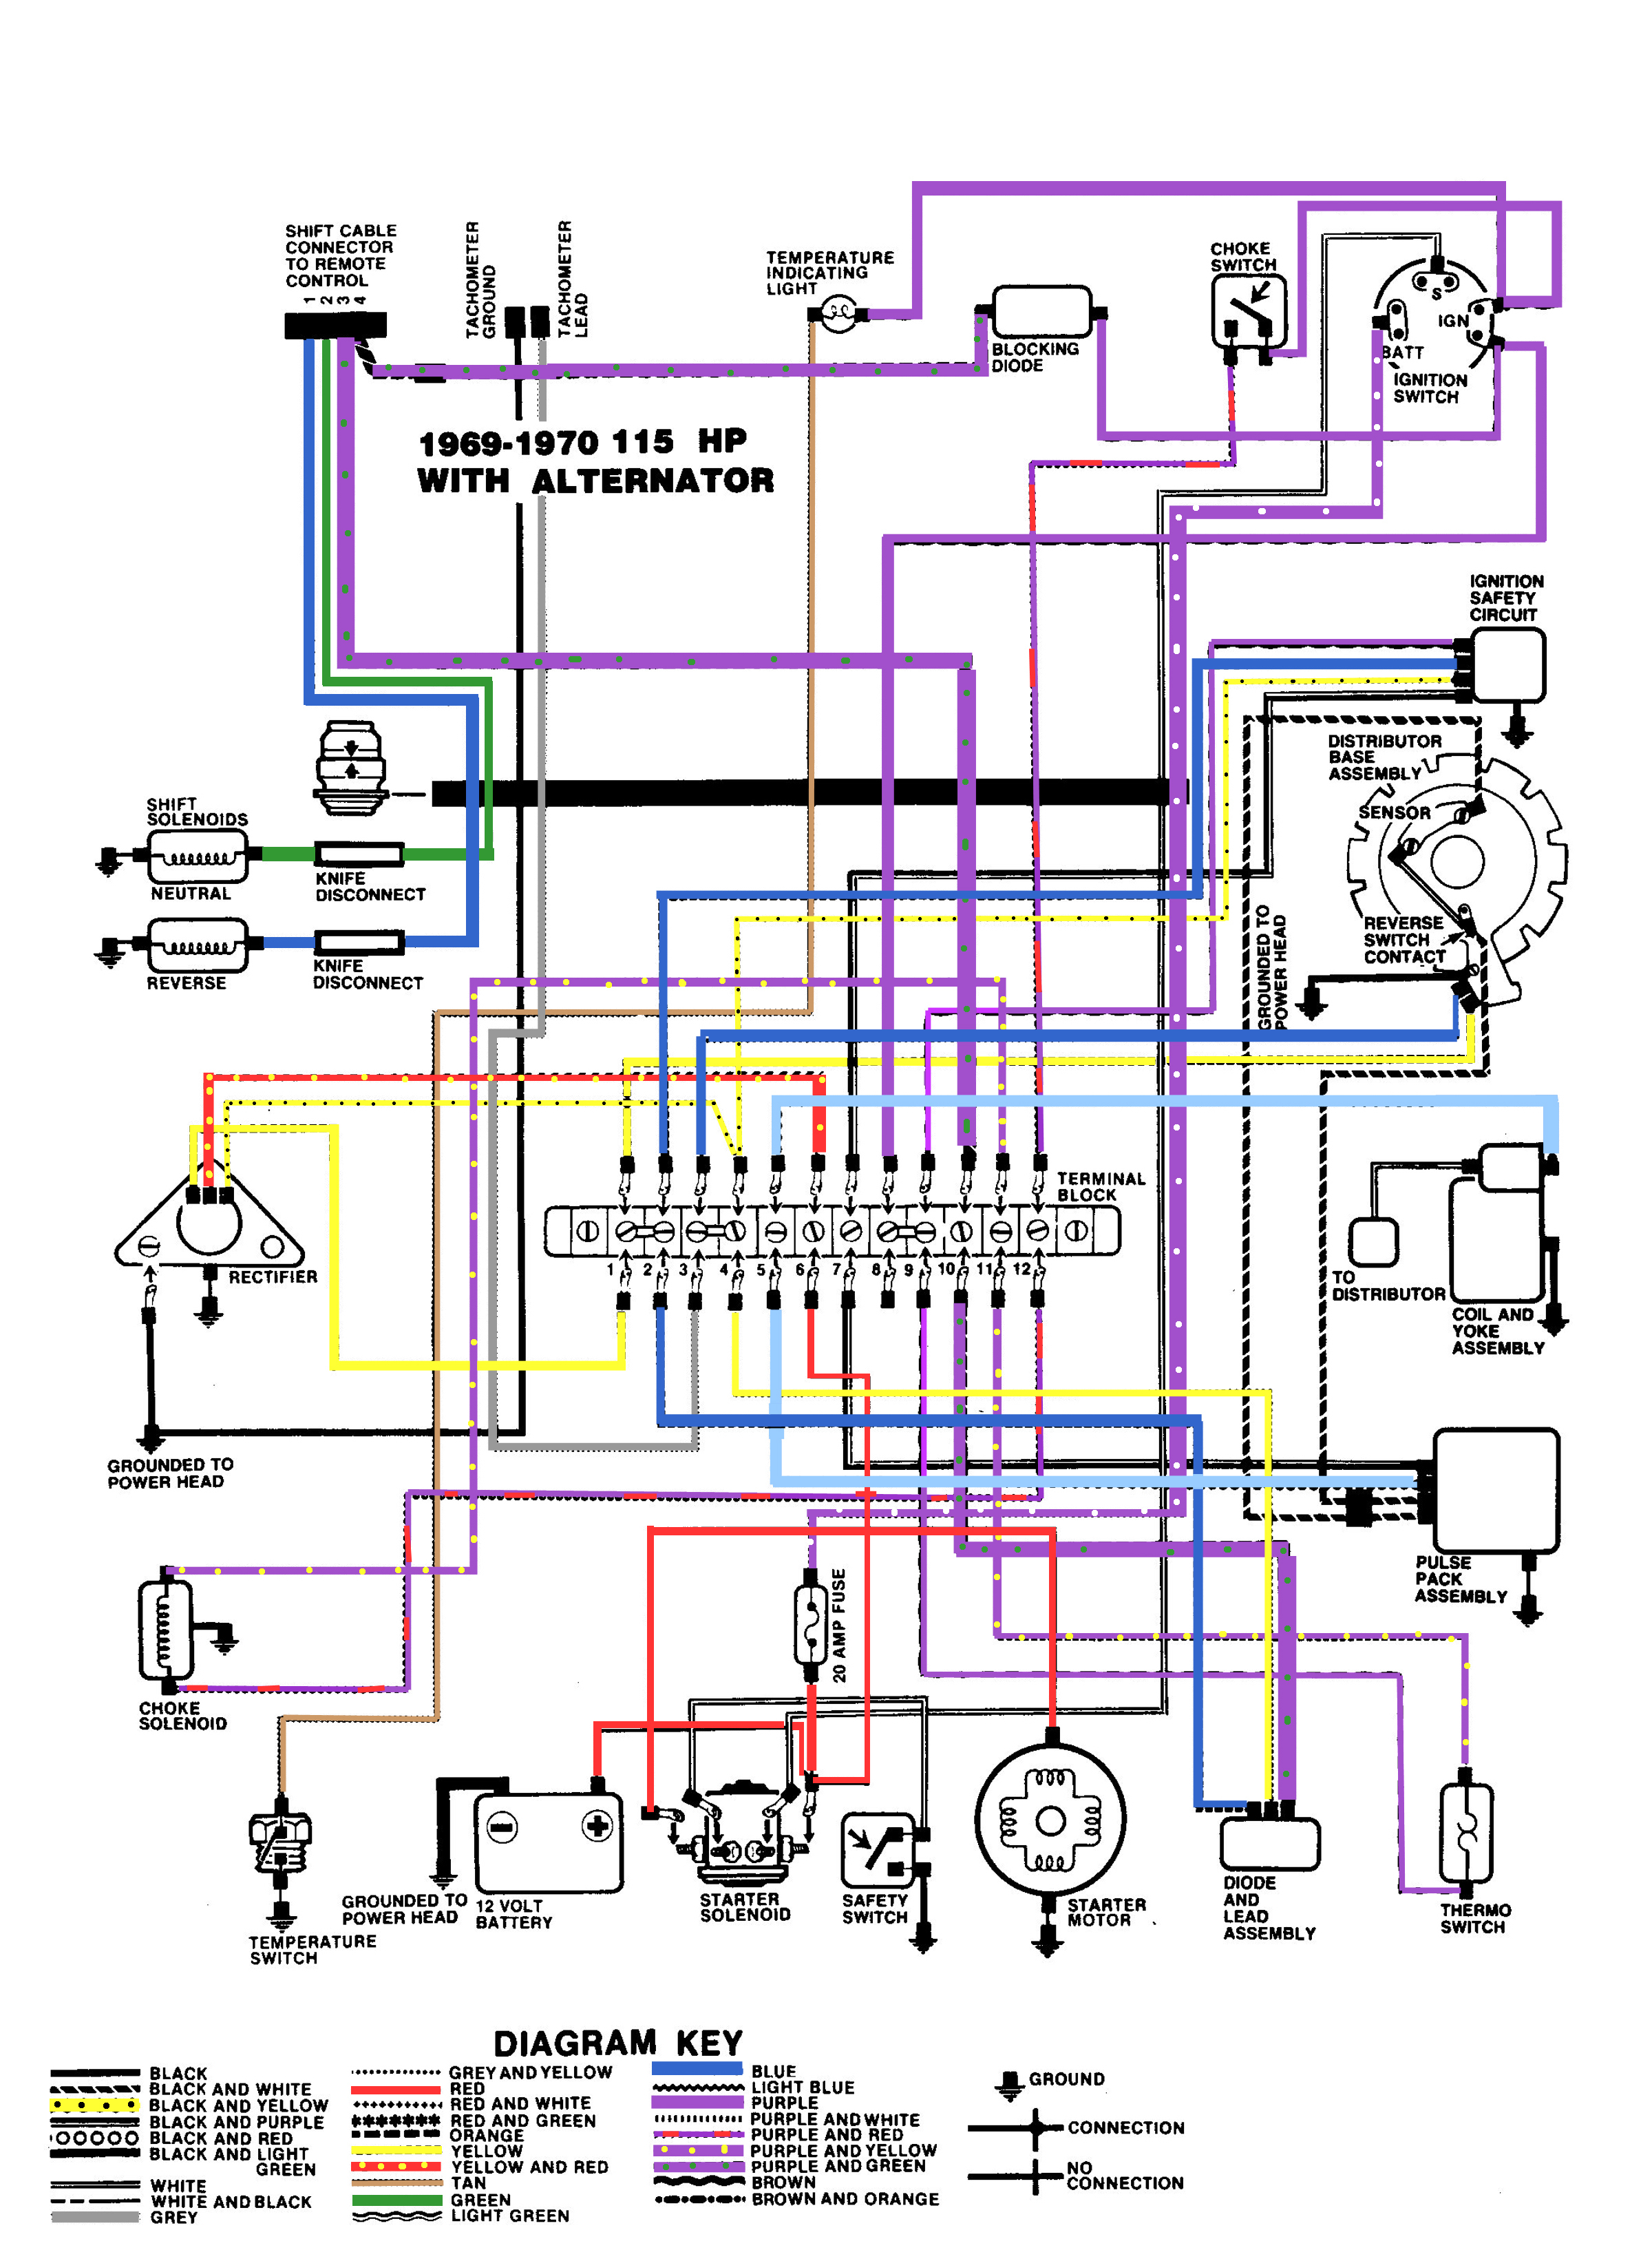 115 Hp Evinrude Wiring Harness Diagram   Wiring Diagram - Evinrude Wiring Harness Diagram